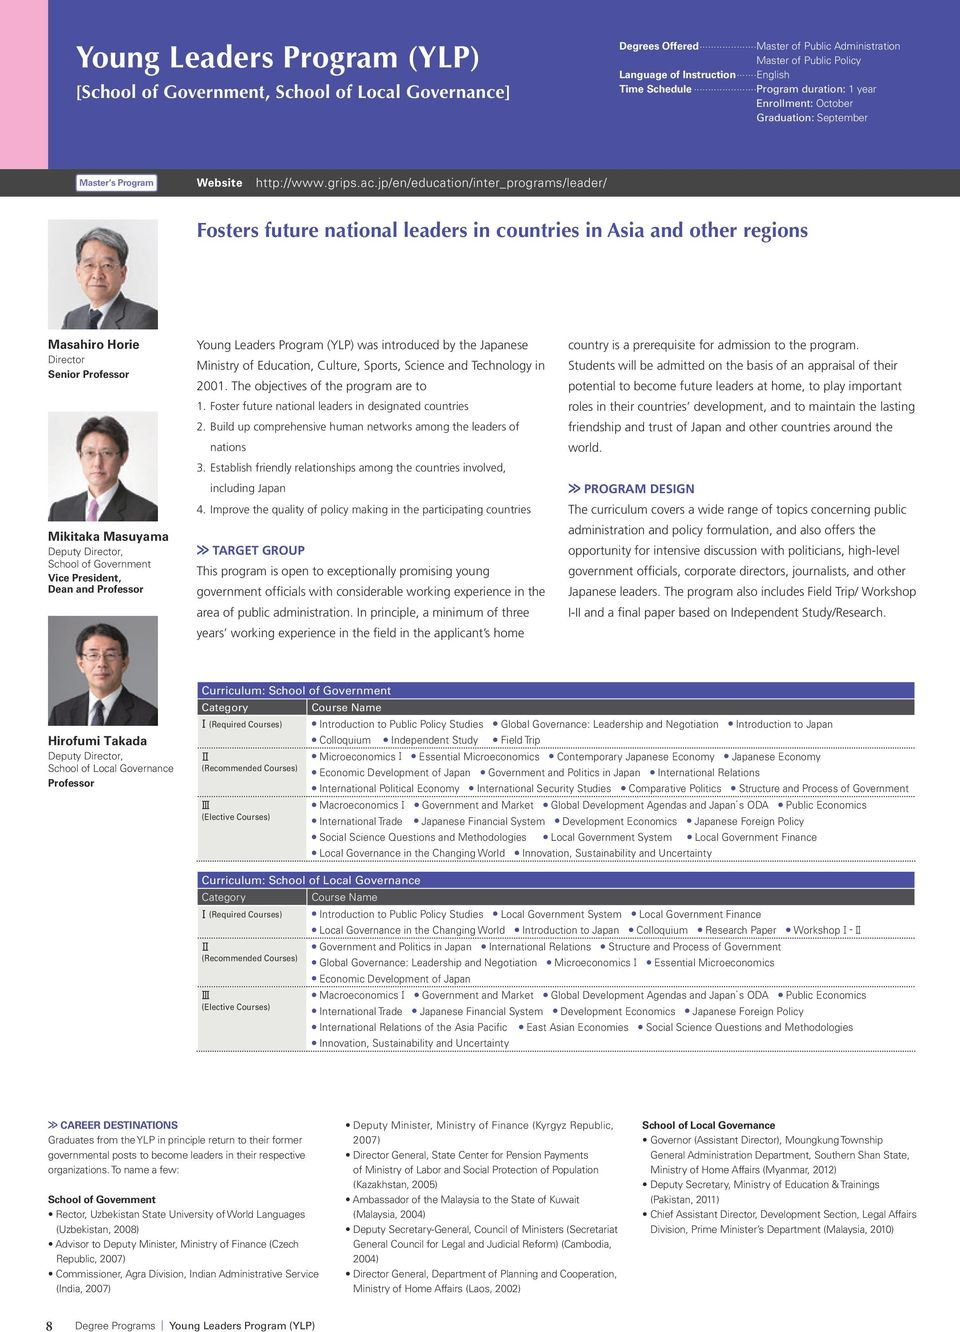 jp/en/education/inter_programs/leader/ Fosters future national leaders in countries in Asia and other regions Masahiro Horie Senior Mikitaka Masuyama Deputy, School of Government Vice President, Dean